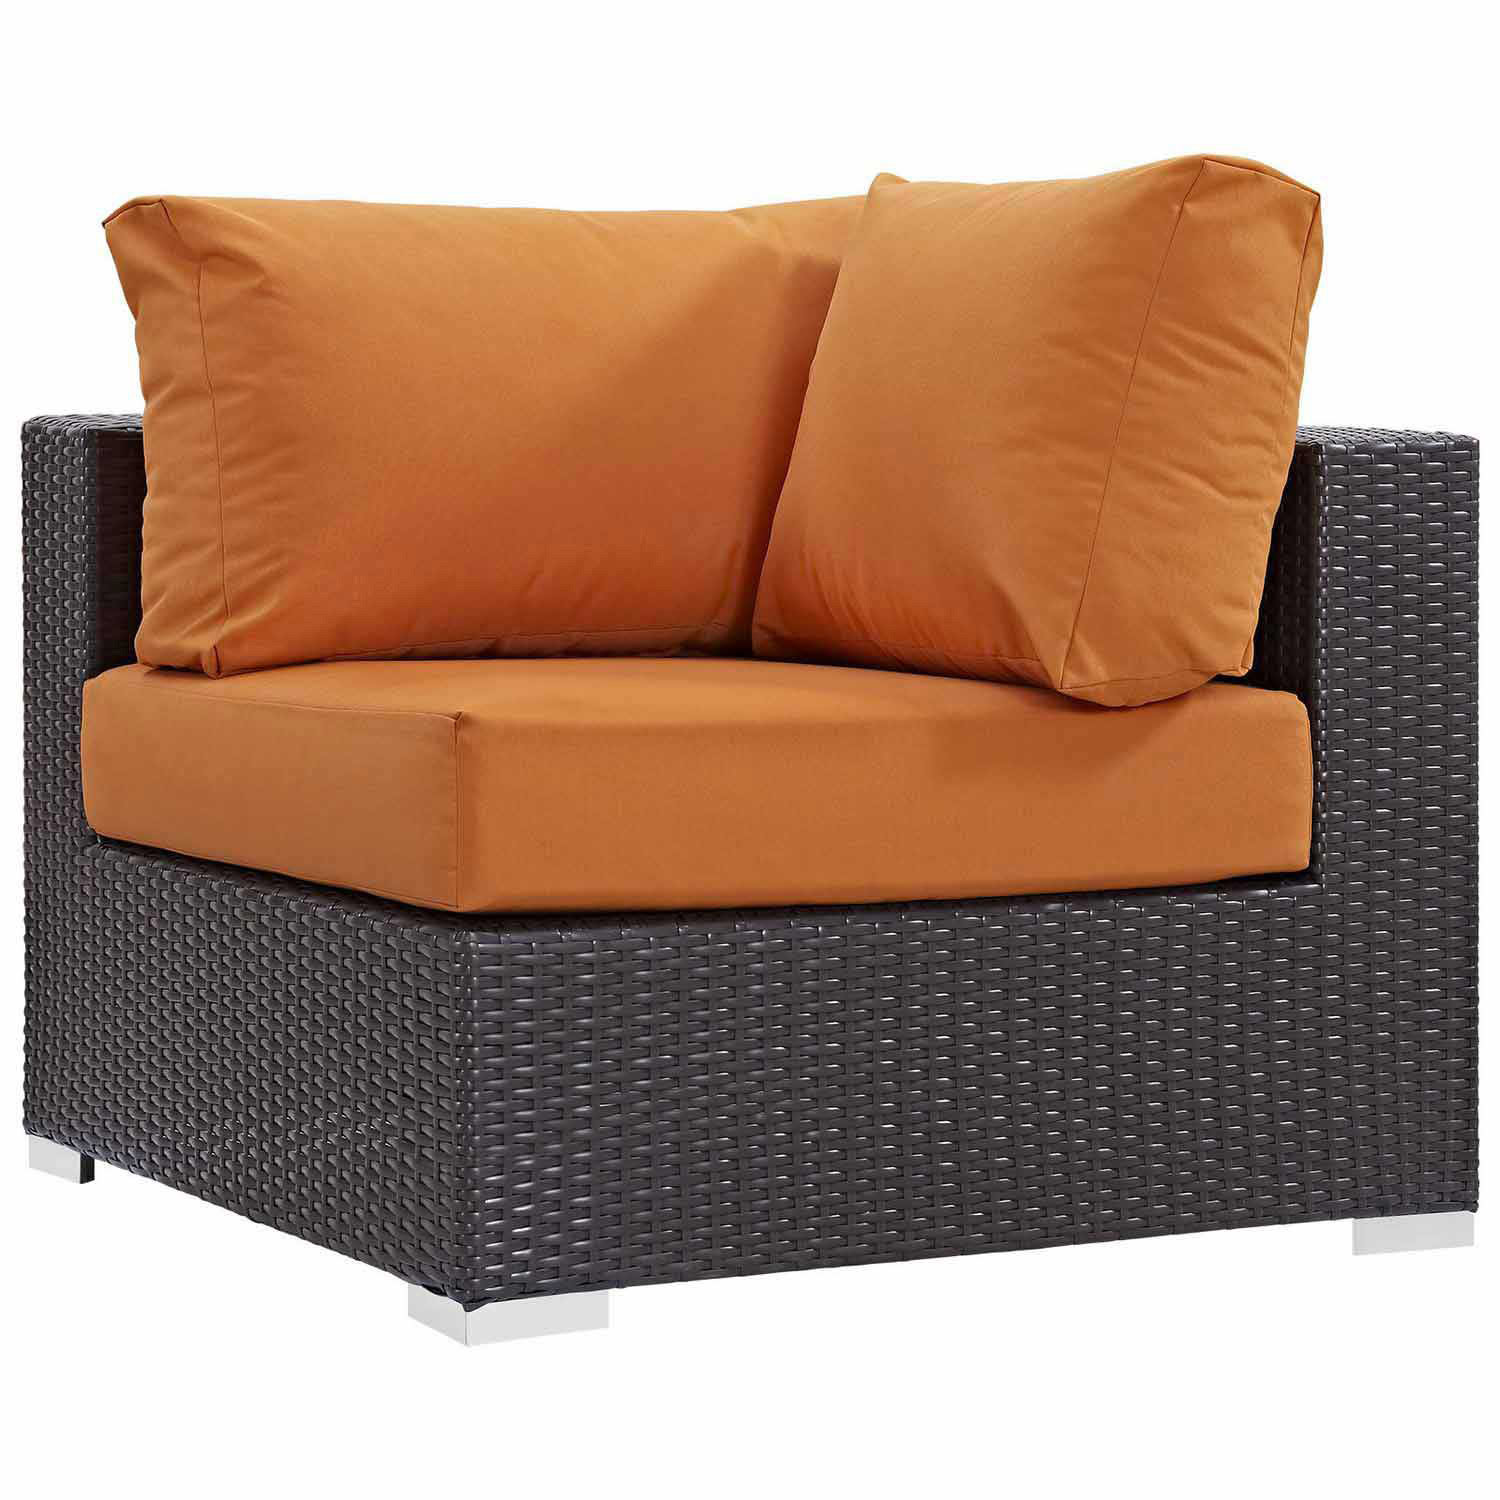 Modway Convene Outdoor Patio Corner - Espresso Orange